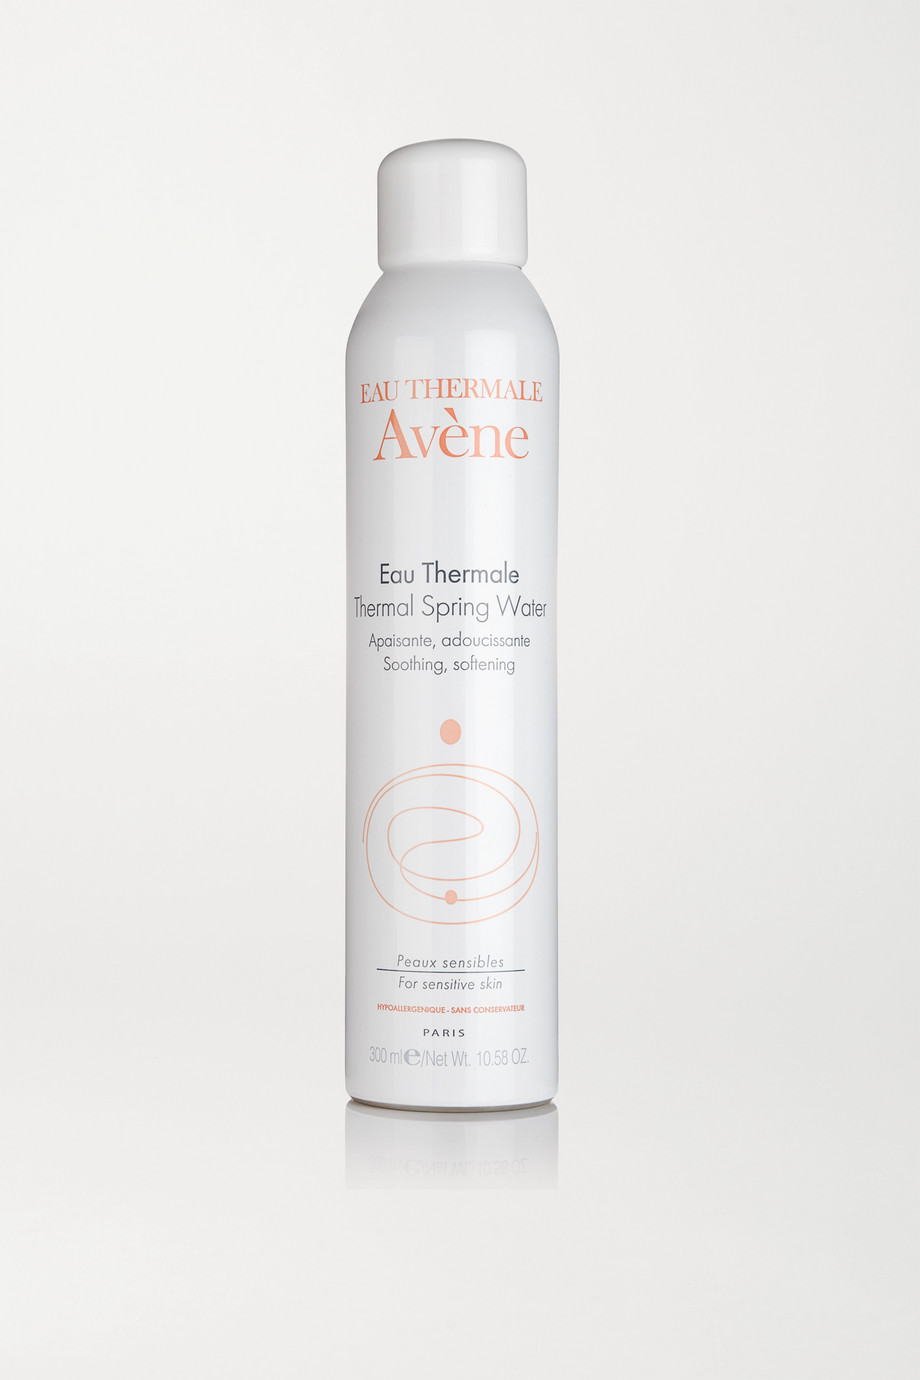 Instructions for use:Spray onto the skin in a fine mist Wait for a few seconds, then gently pat dry 300ml/10.58 fl.oz.Ingredients: Avène Thermal Spring Water, Nitrogen